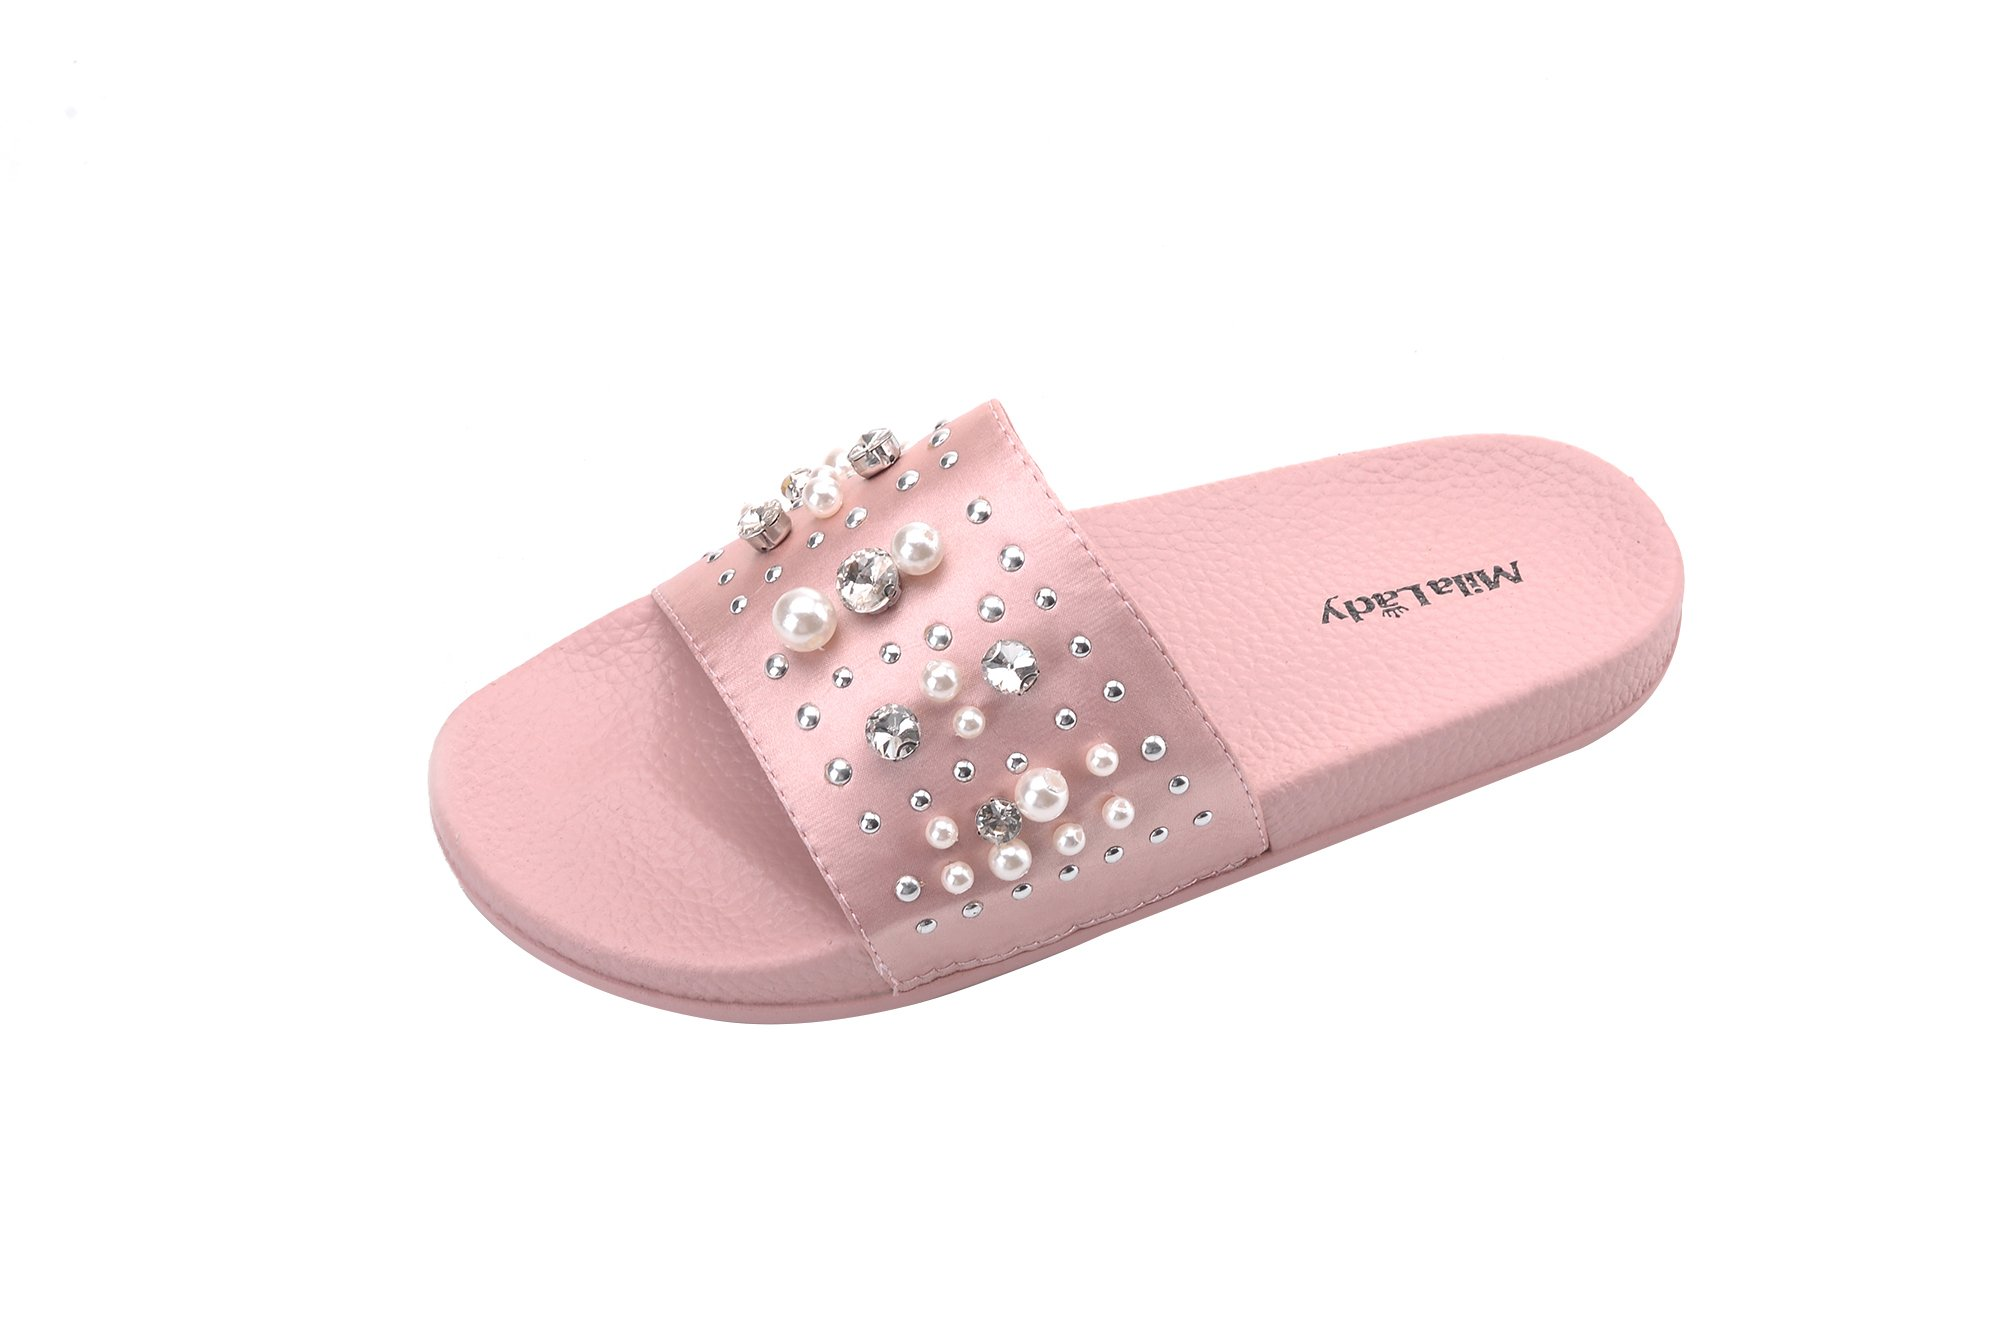 Ashley A Collection(Sandy Women's Fashion Slipper with Pearl and Rhinestone Upper Slip On Silky Slide Sandal, PINK5.5